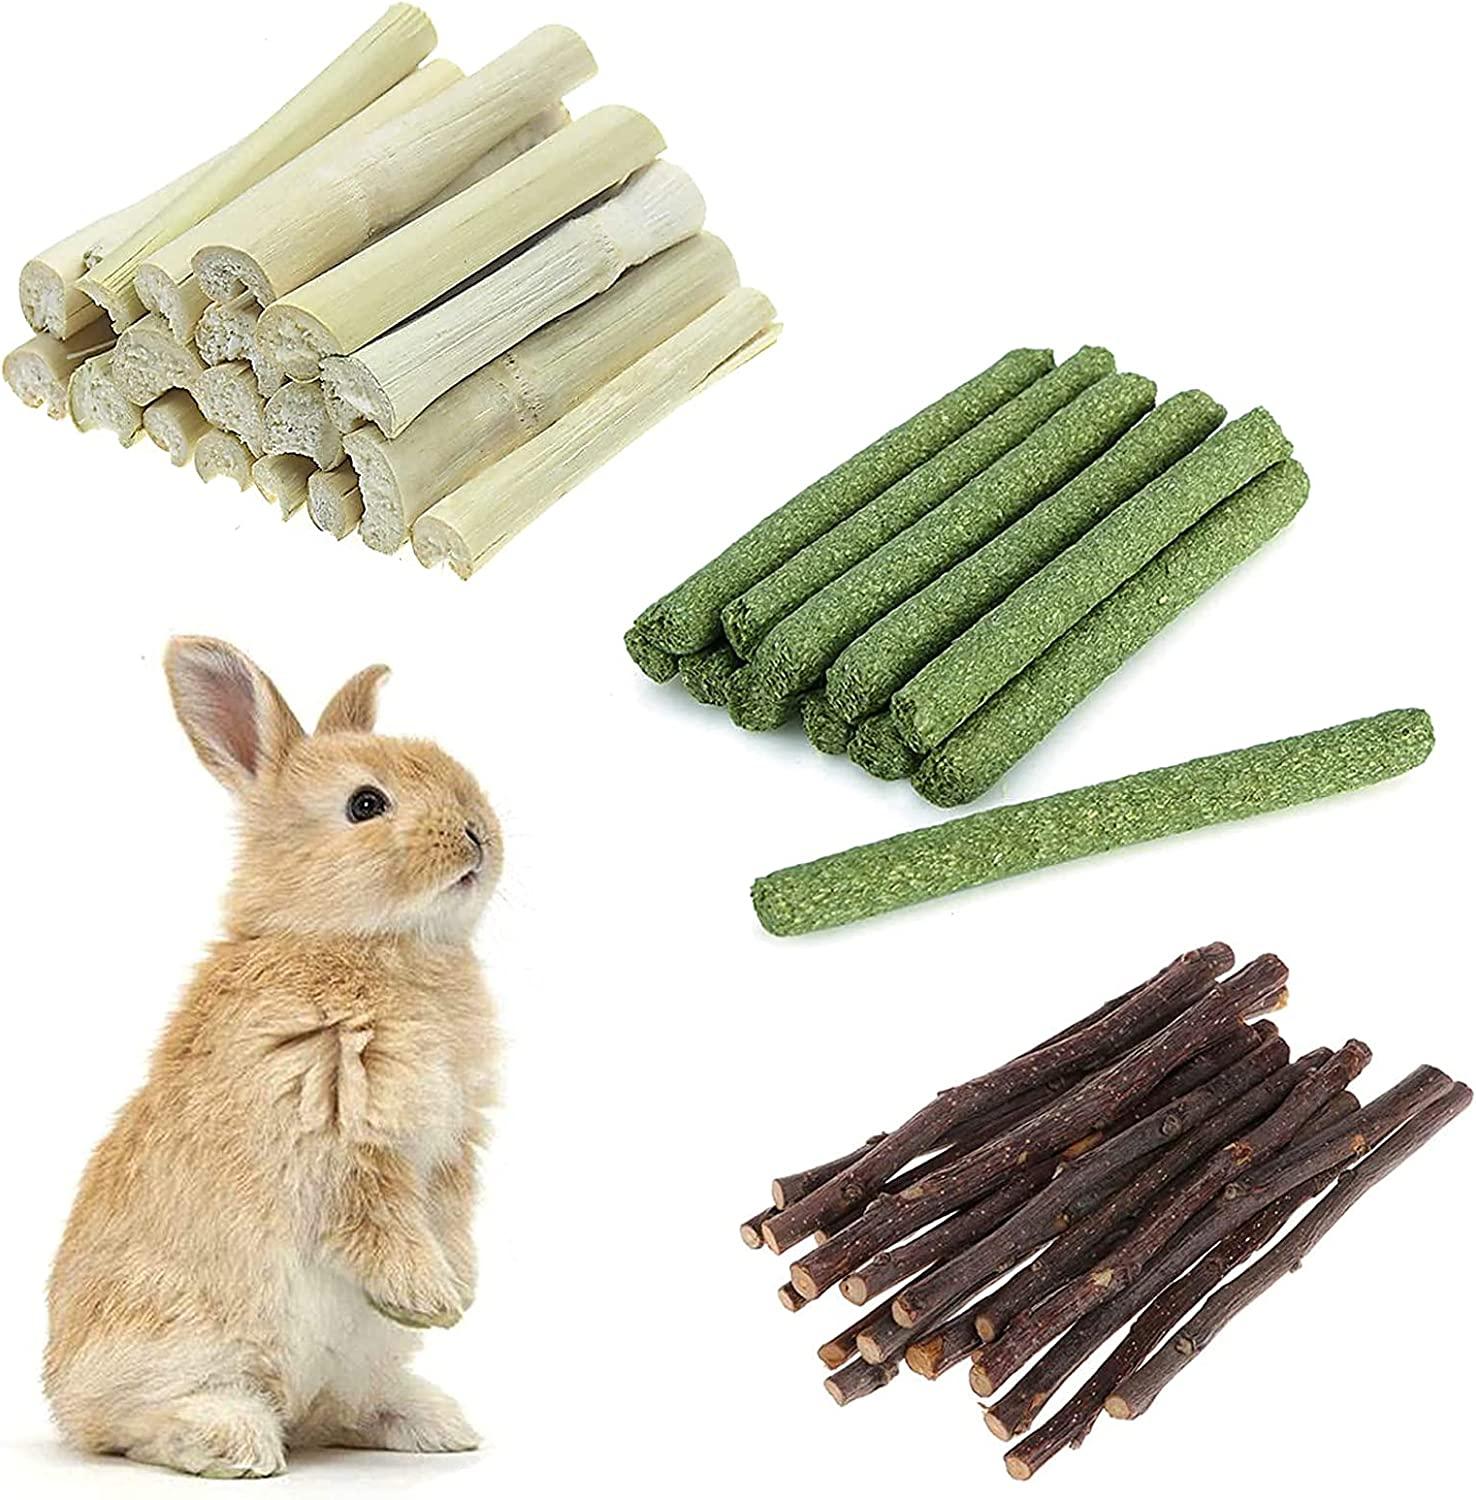 sharllen Chew Toys Molar Sticks Animals Cleaning Teeth Natural Apple Timothy Hay Sweet Bamboo Sticks 3 Types of Combined Wood Toys Squirrel Rabbit Chinchilla Guinea Pig Hamster Gerbil Parrot